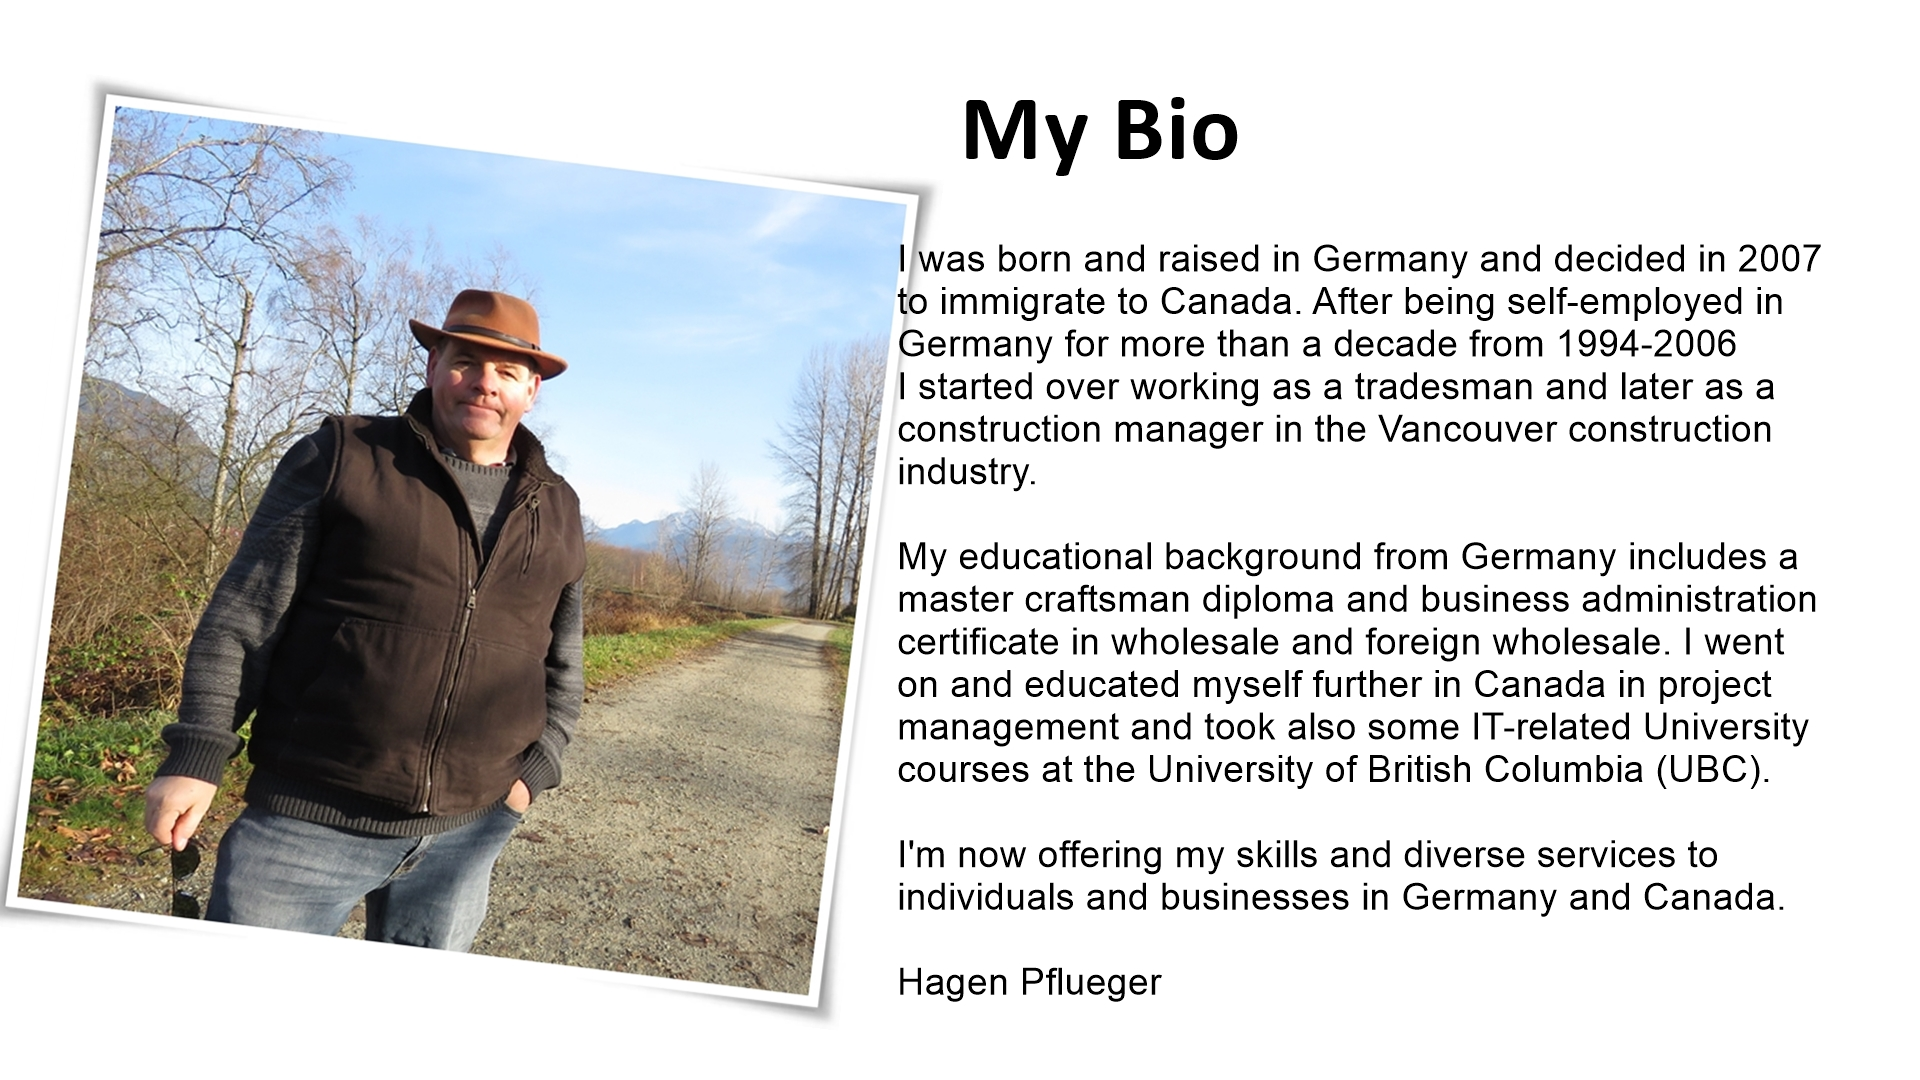 Hagen pflueger a german in vancouver hagen pflueger vancouver canada your german canadian host local guide service provider and business partner for individuals and businesses in canada 1betcityfo Choice Image